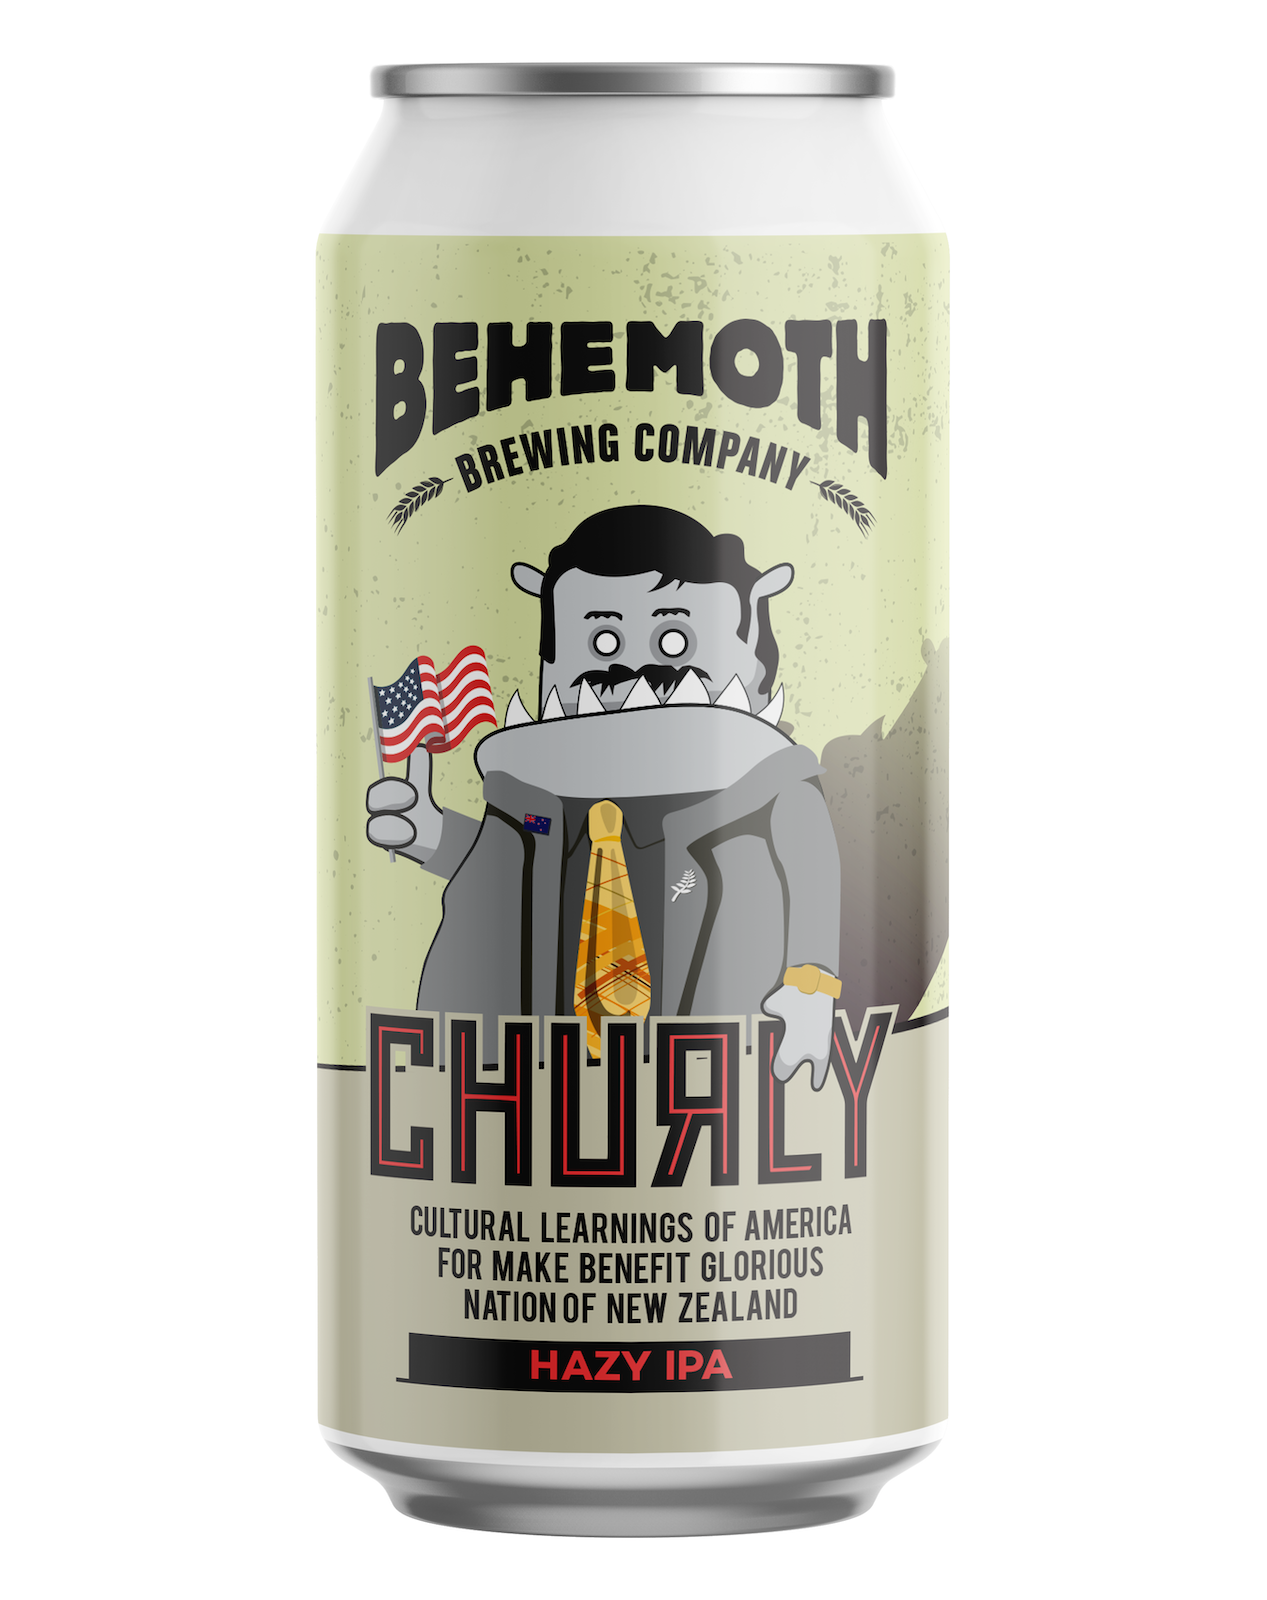 Churly Cultural Learnings of America to make great glorious nation of New Zealand Hazy IPA